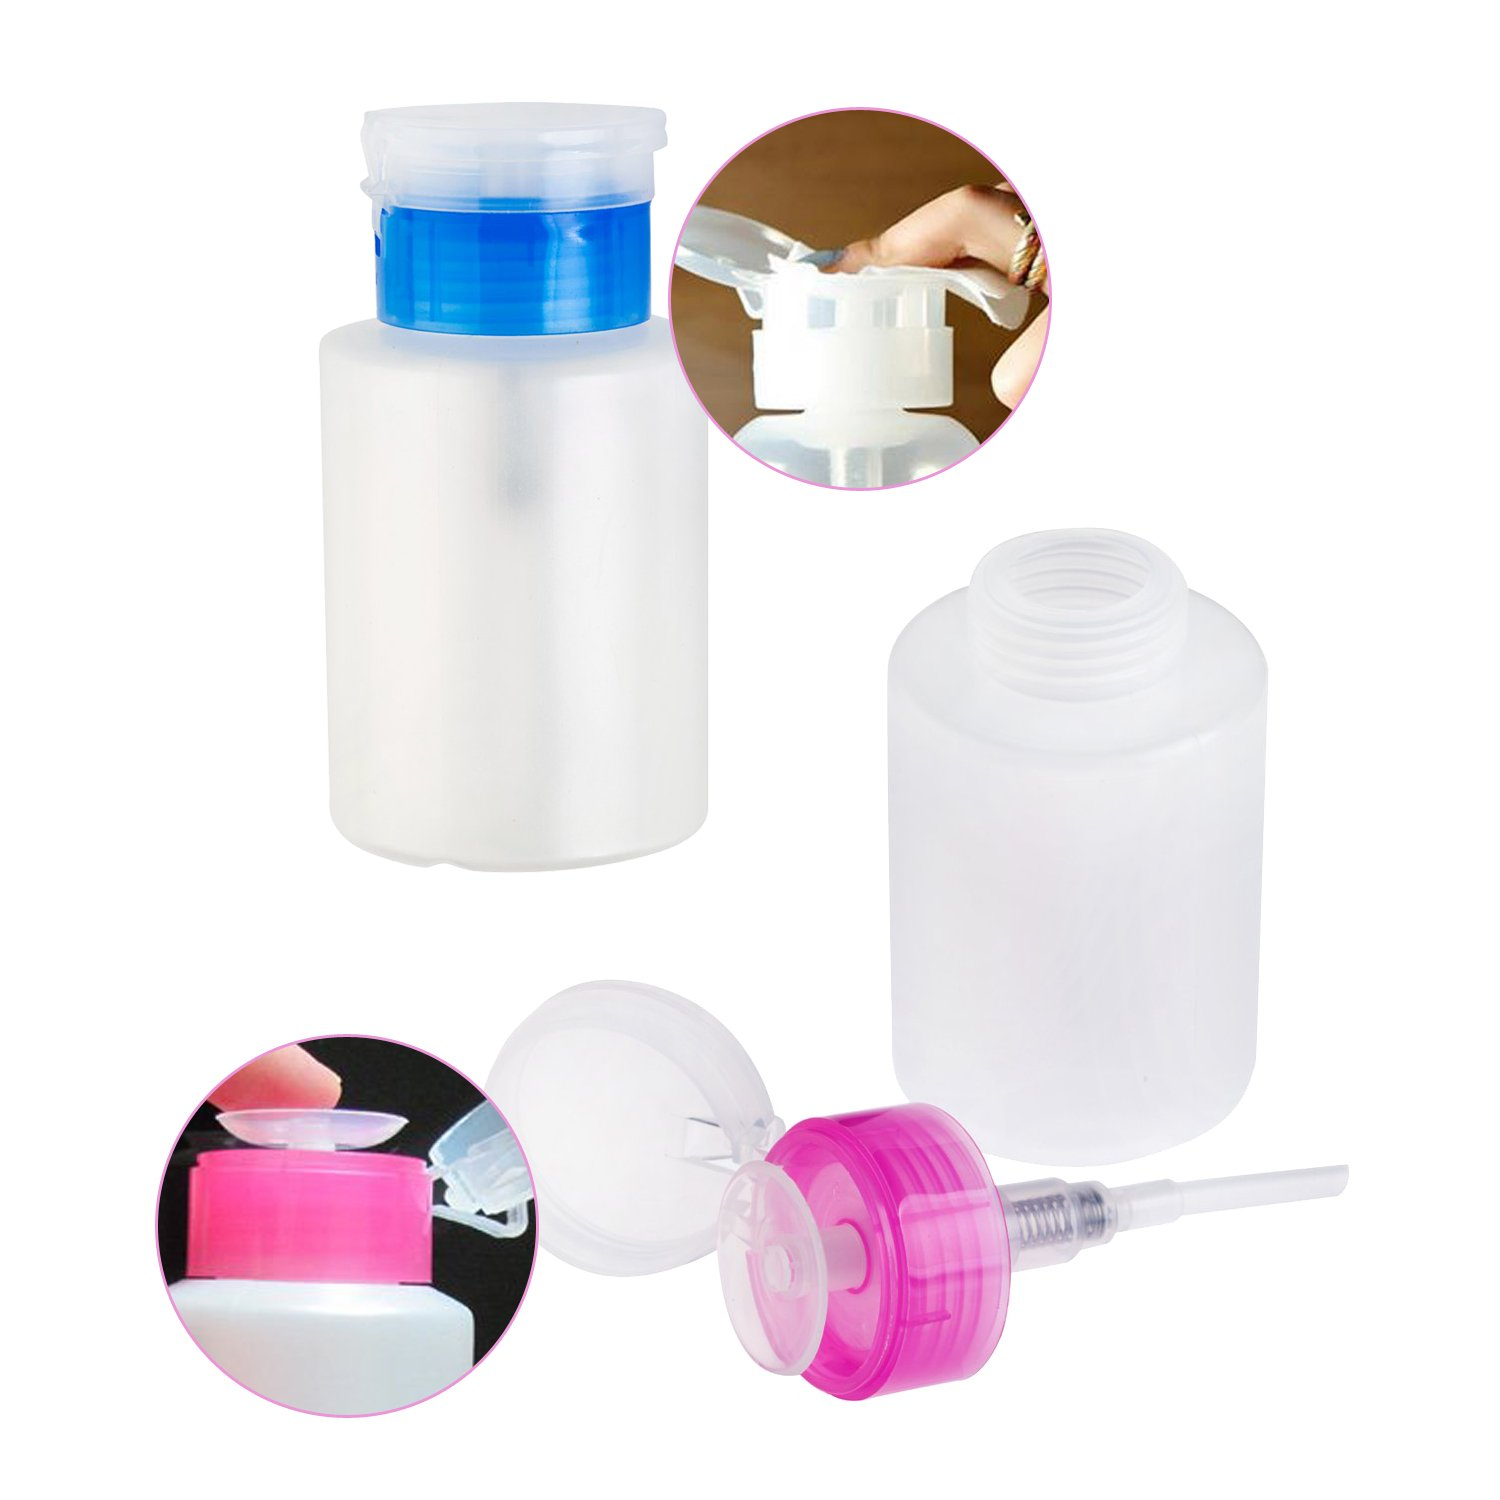 High Quality Set of 2pcs Nail Art And Make Up Cosmetics Liquids Pump Bottles Dispensers for Polish / Varnish Removers, Creams, Tonics And Lotions With Pink And Blue Lids By VAGA